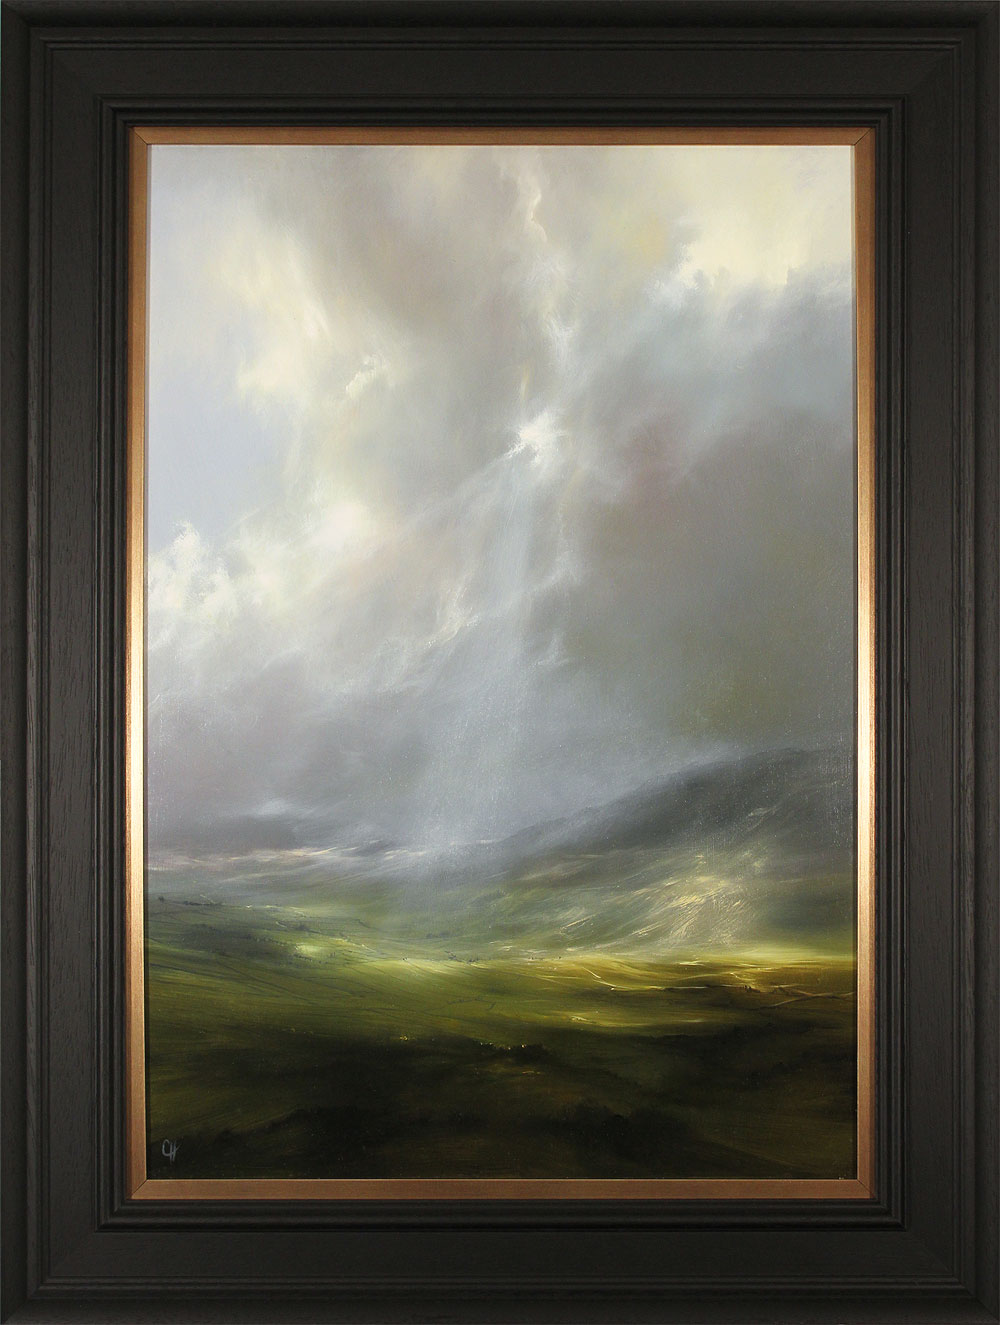 Clare Haley, Original oil painting on panel, Light Through Rifted Cloud. Click to enlarge